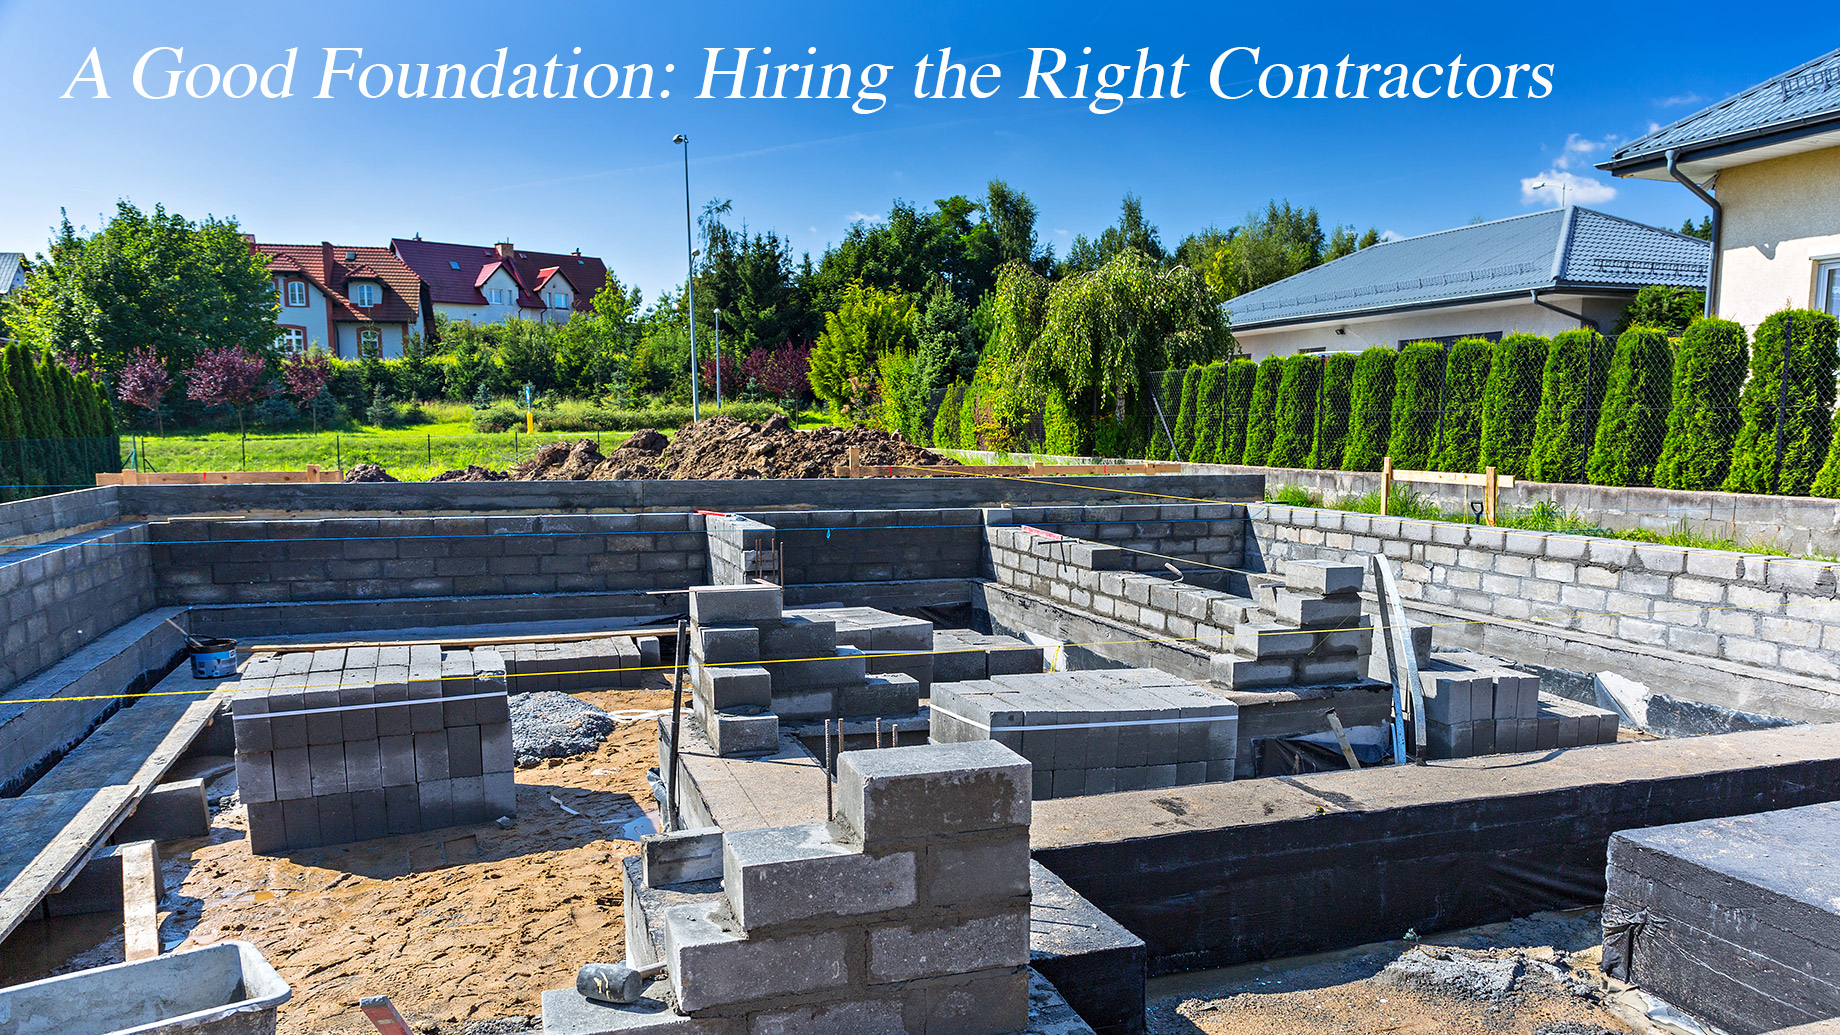 A Good Foundation - Hiring the Right Contractors